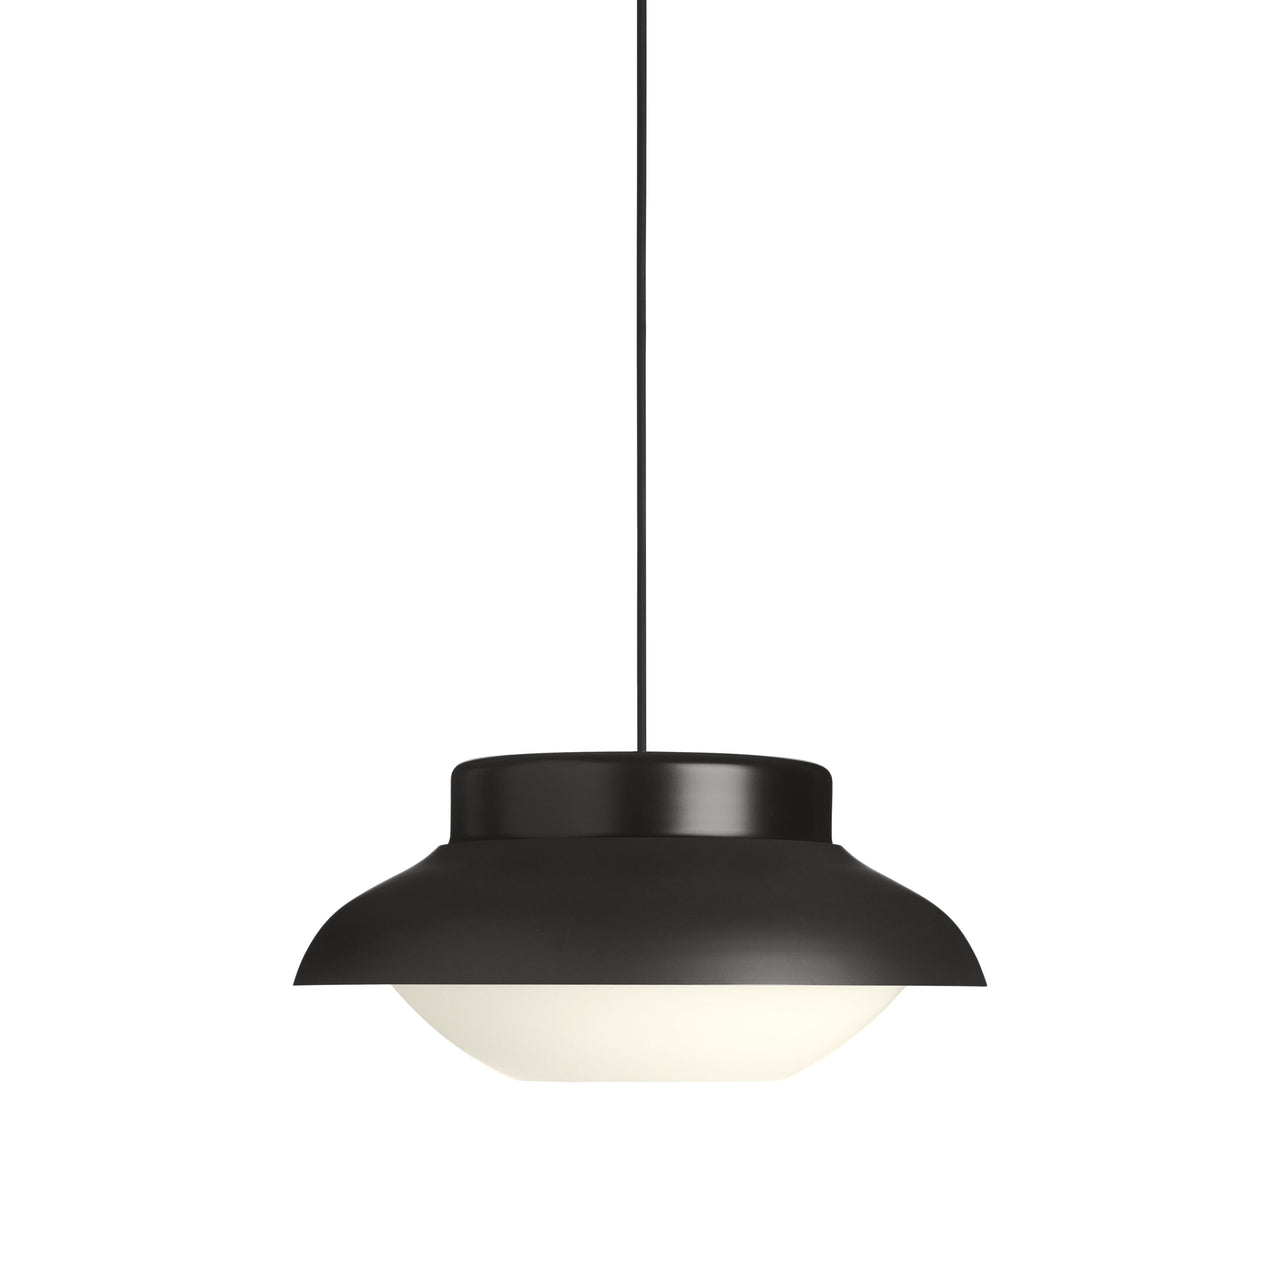 Collar Pendant Light: Large + Carbone